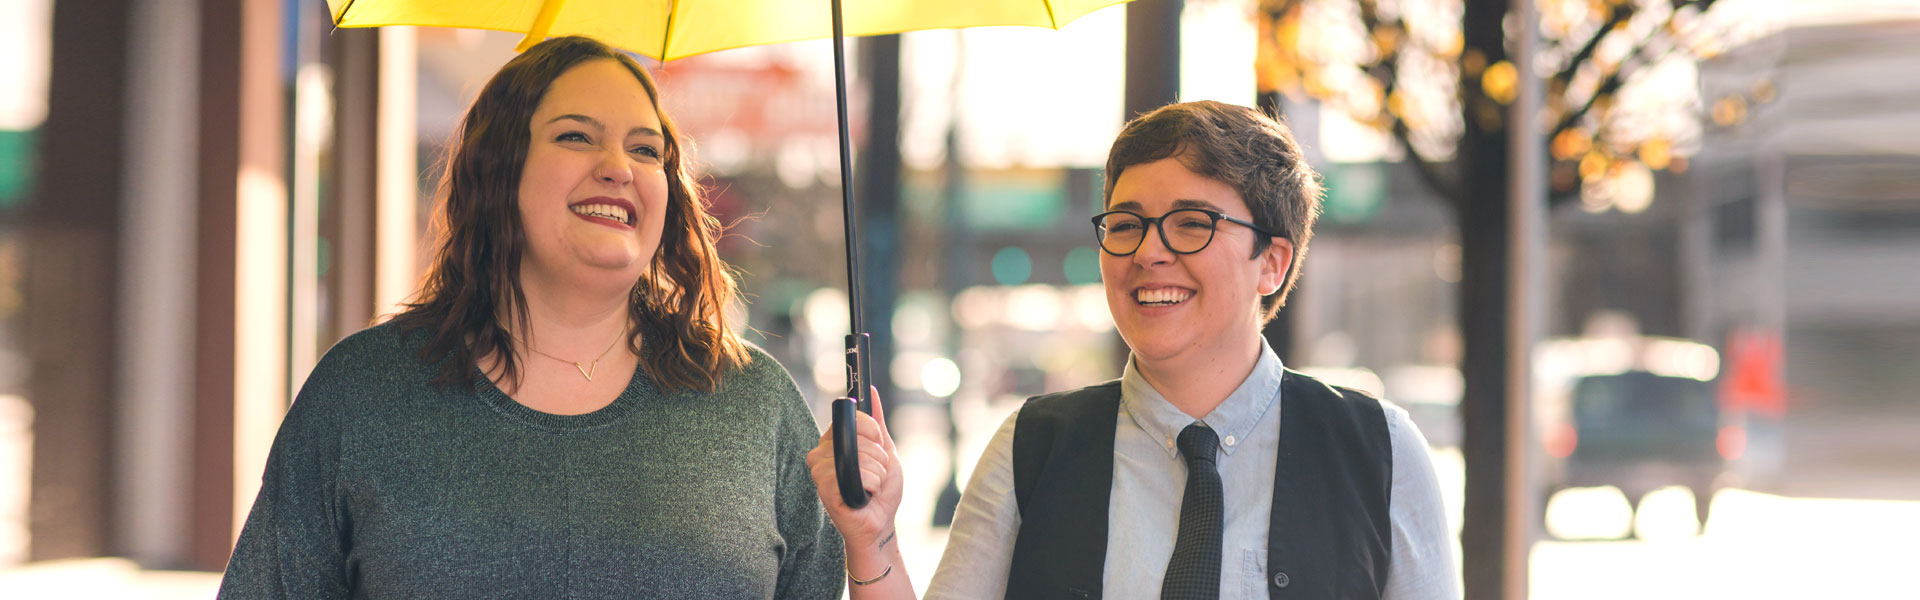 women smiling under yellow umbrella